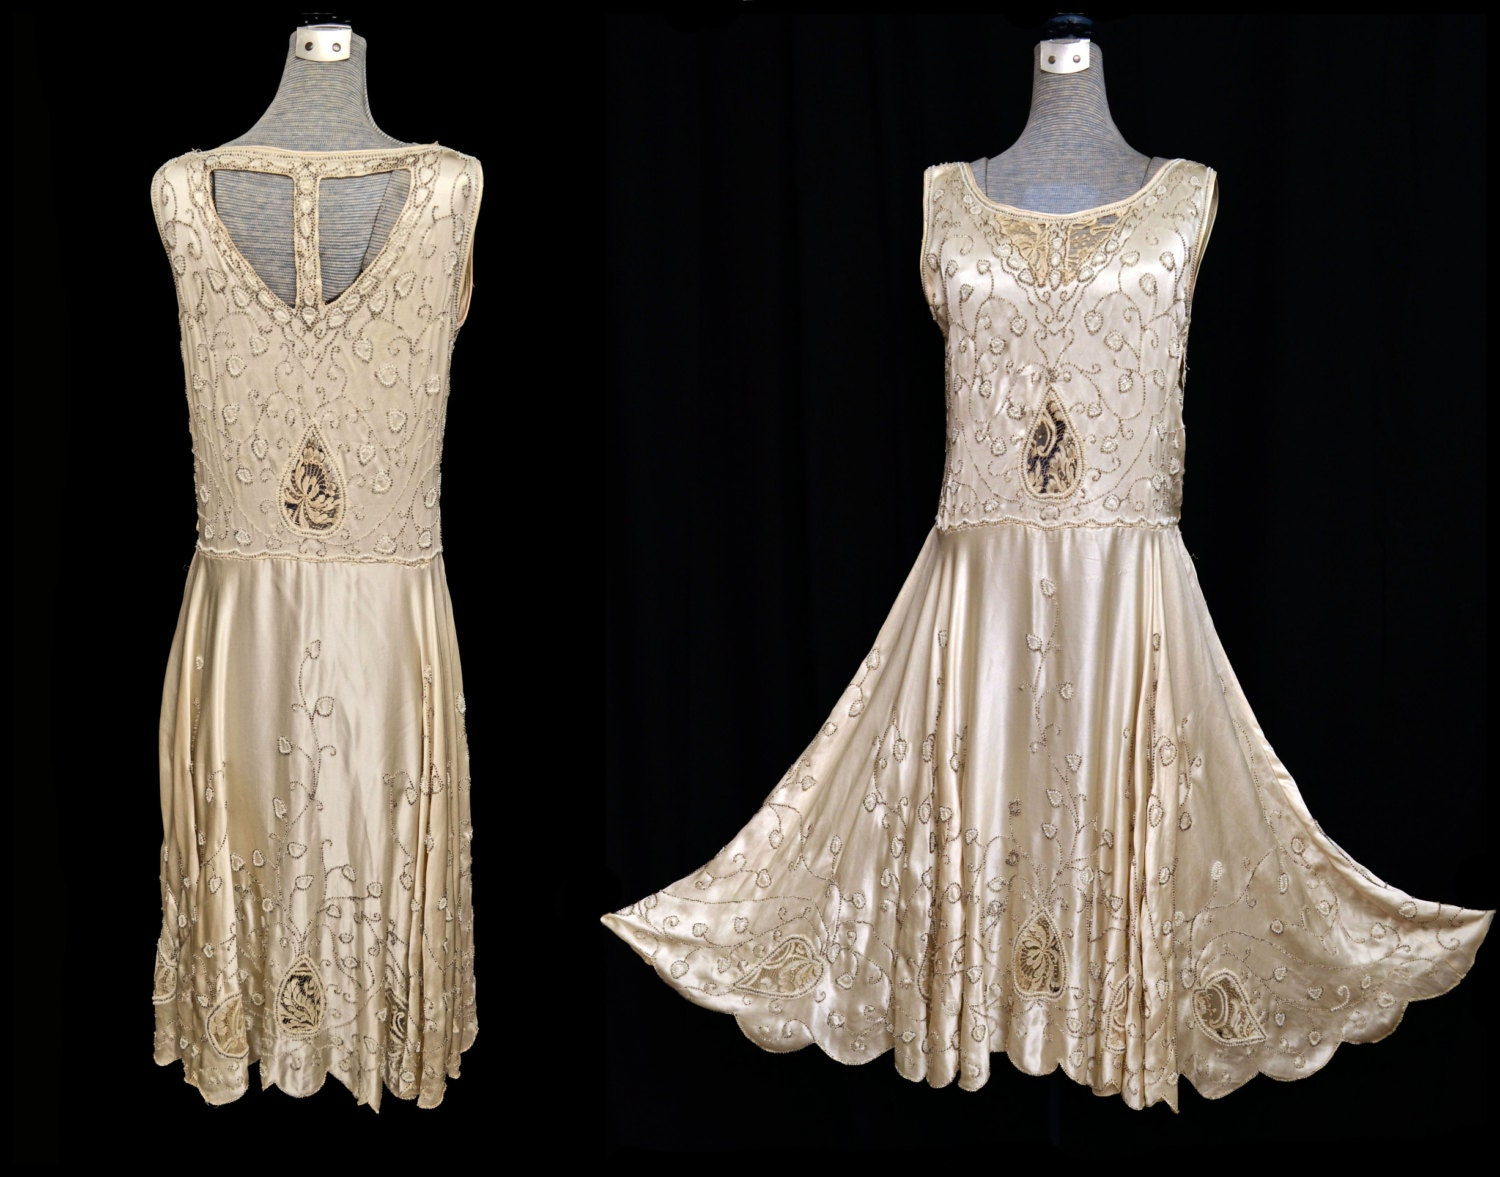 Vintage 20s dress 1920s beaded dress 20s flapper dress for Vintage 20s wedding dresses